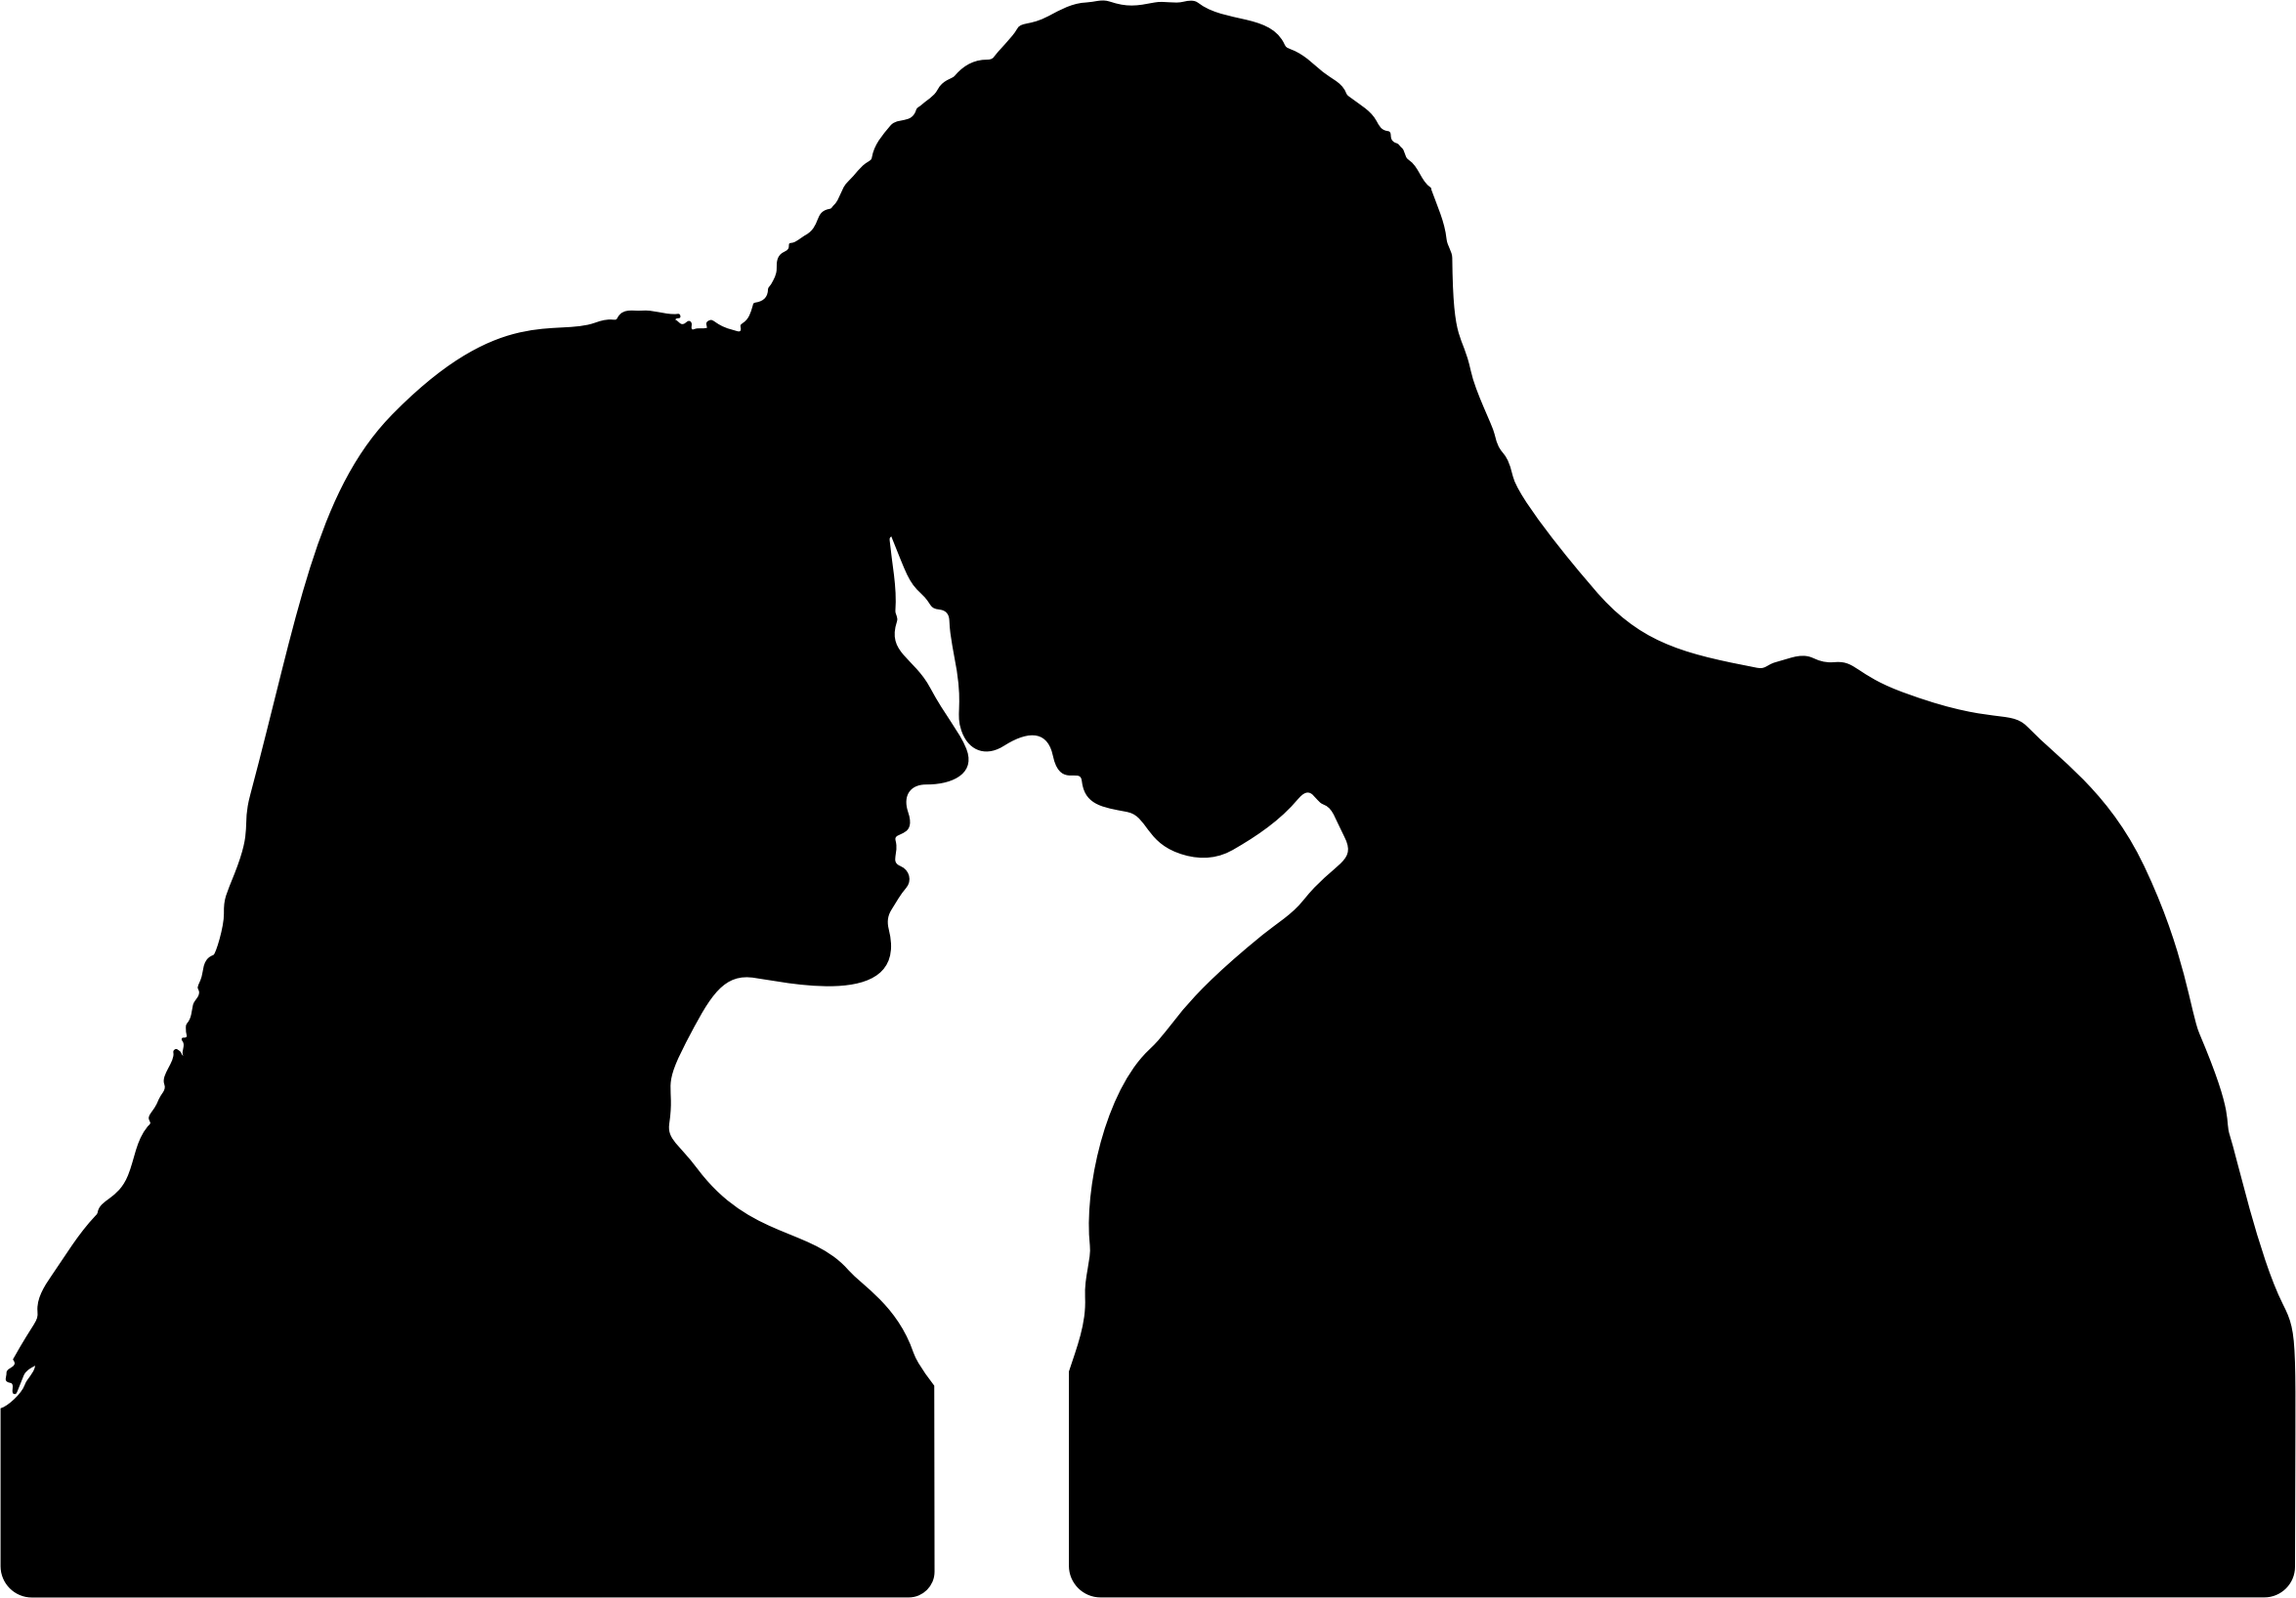 Baby Girl Hd Wallpaper Download Clipart Couple Touching Foreheads Silhouette